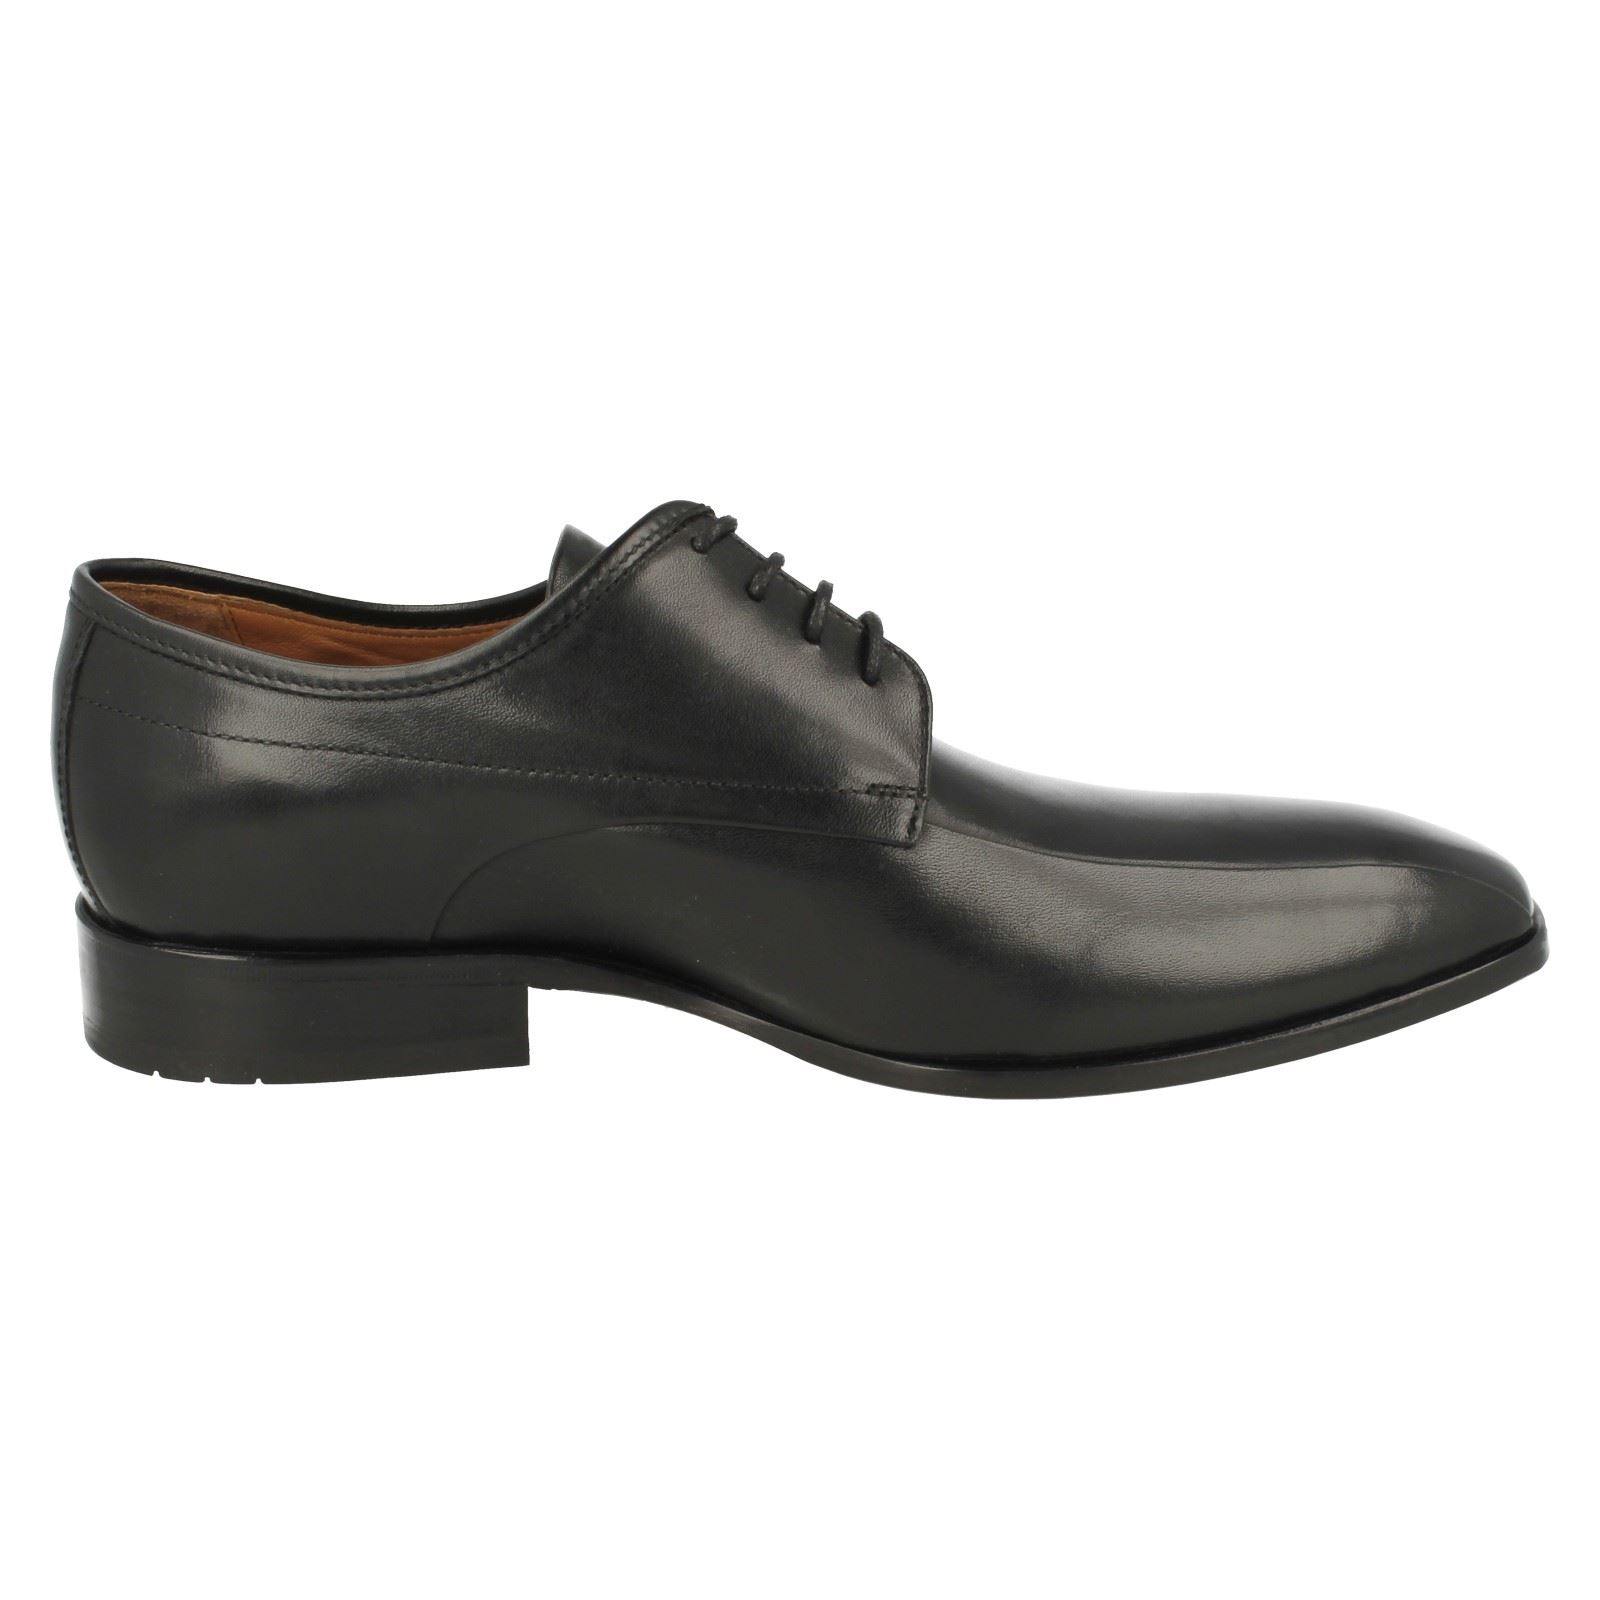 Uomo Clarks Dexie Over Schuhes Smart Formal Lace Up Schuhes Over 7e983f